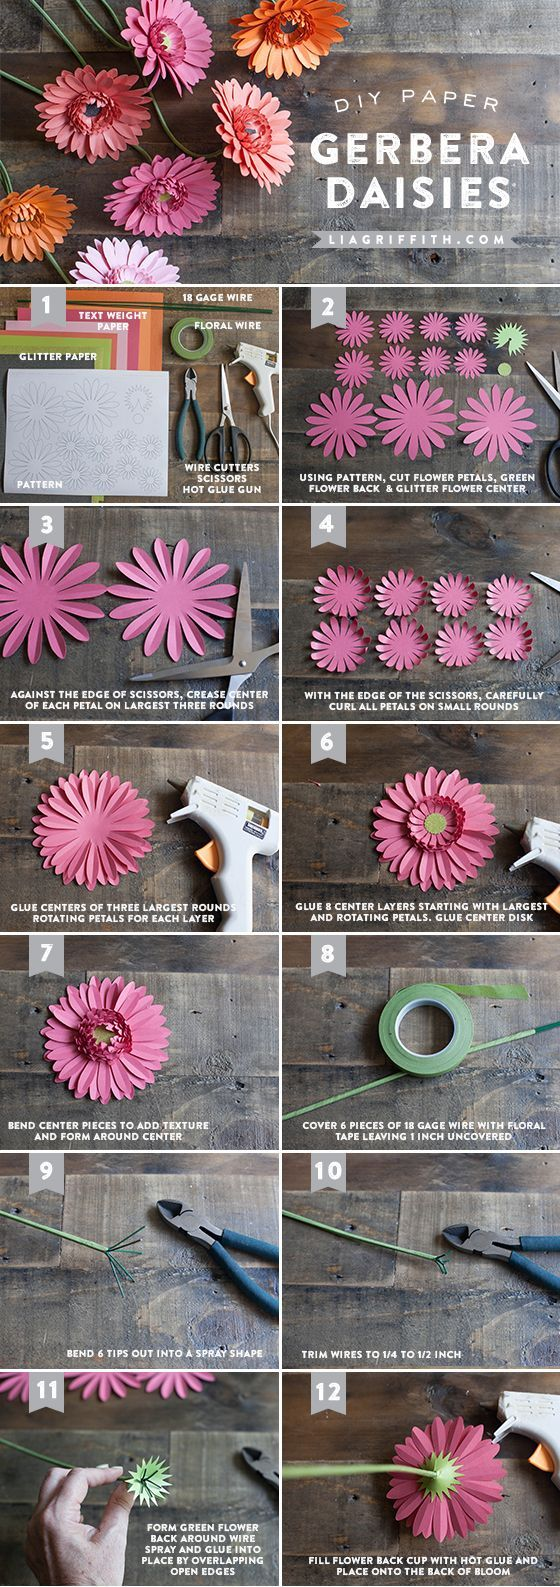 The Homemade Haven Loves this DIY Paper Gerbera daisies tutorial. Pretty paper craft projects ideas. Perfect for weddings, gifts or home decoration.